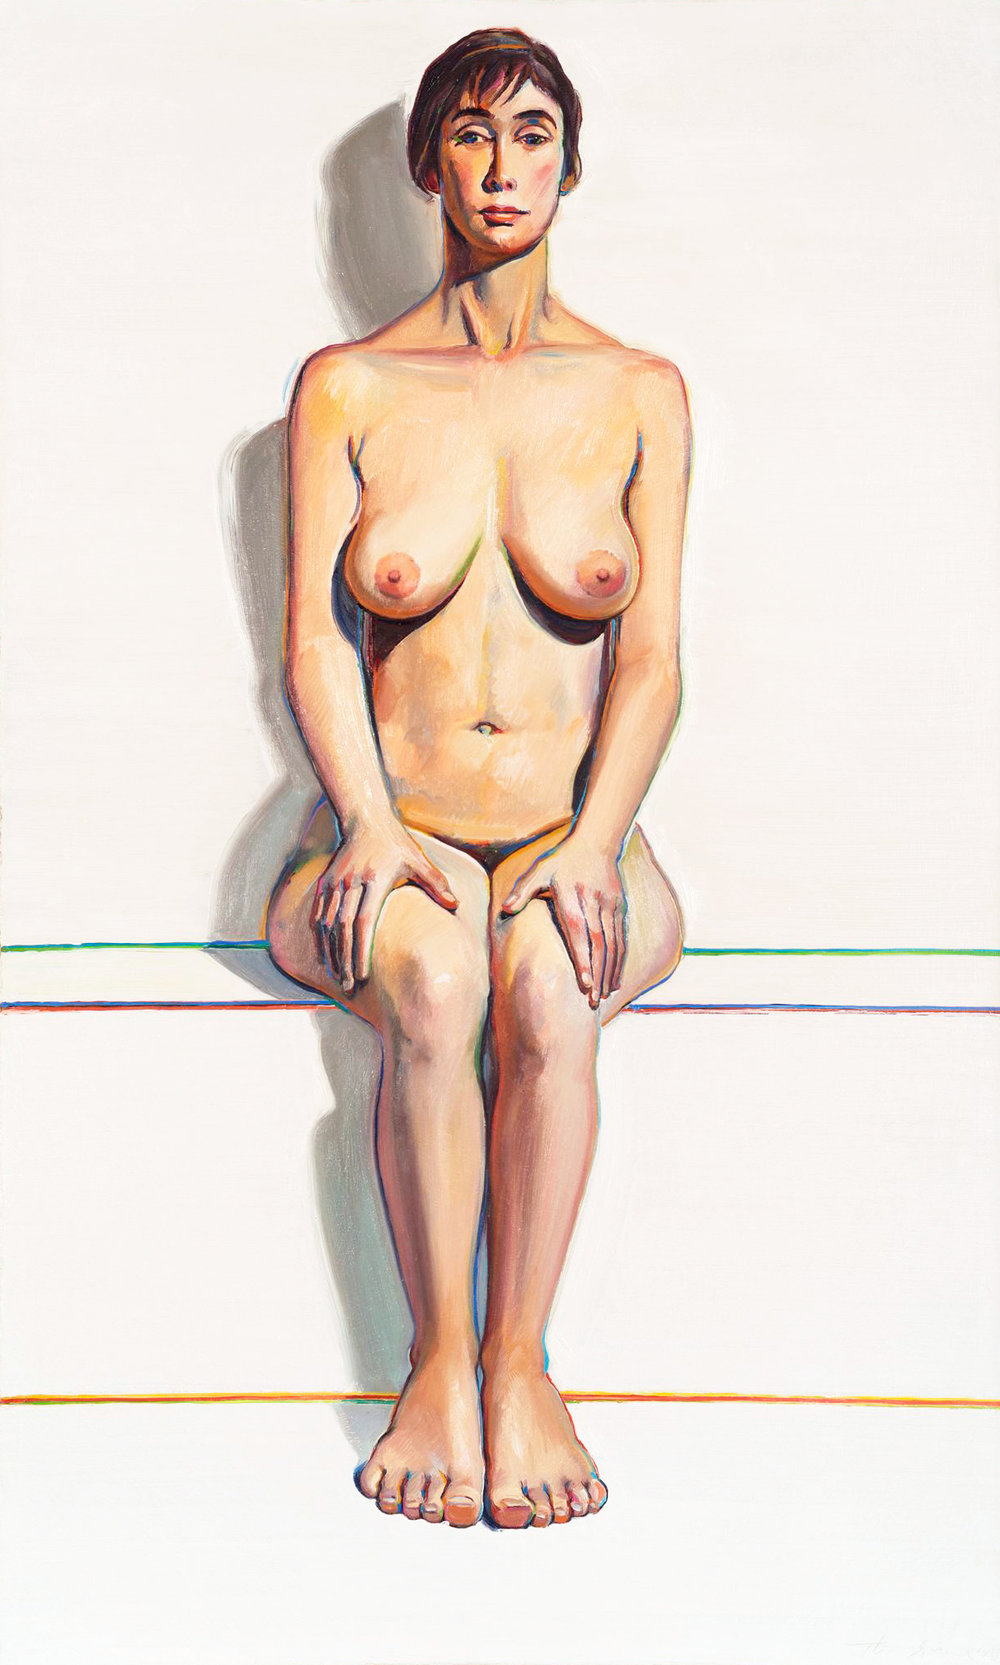 Wayne Thiebaud, Nude (Seated Nude), 1963 Oil on canvas 60 x 36 in. Courtesy: Allan Stone Projects, New York © Wayne Thiebaud/Licensed by VAGA, New York, NY